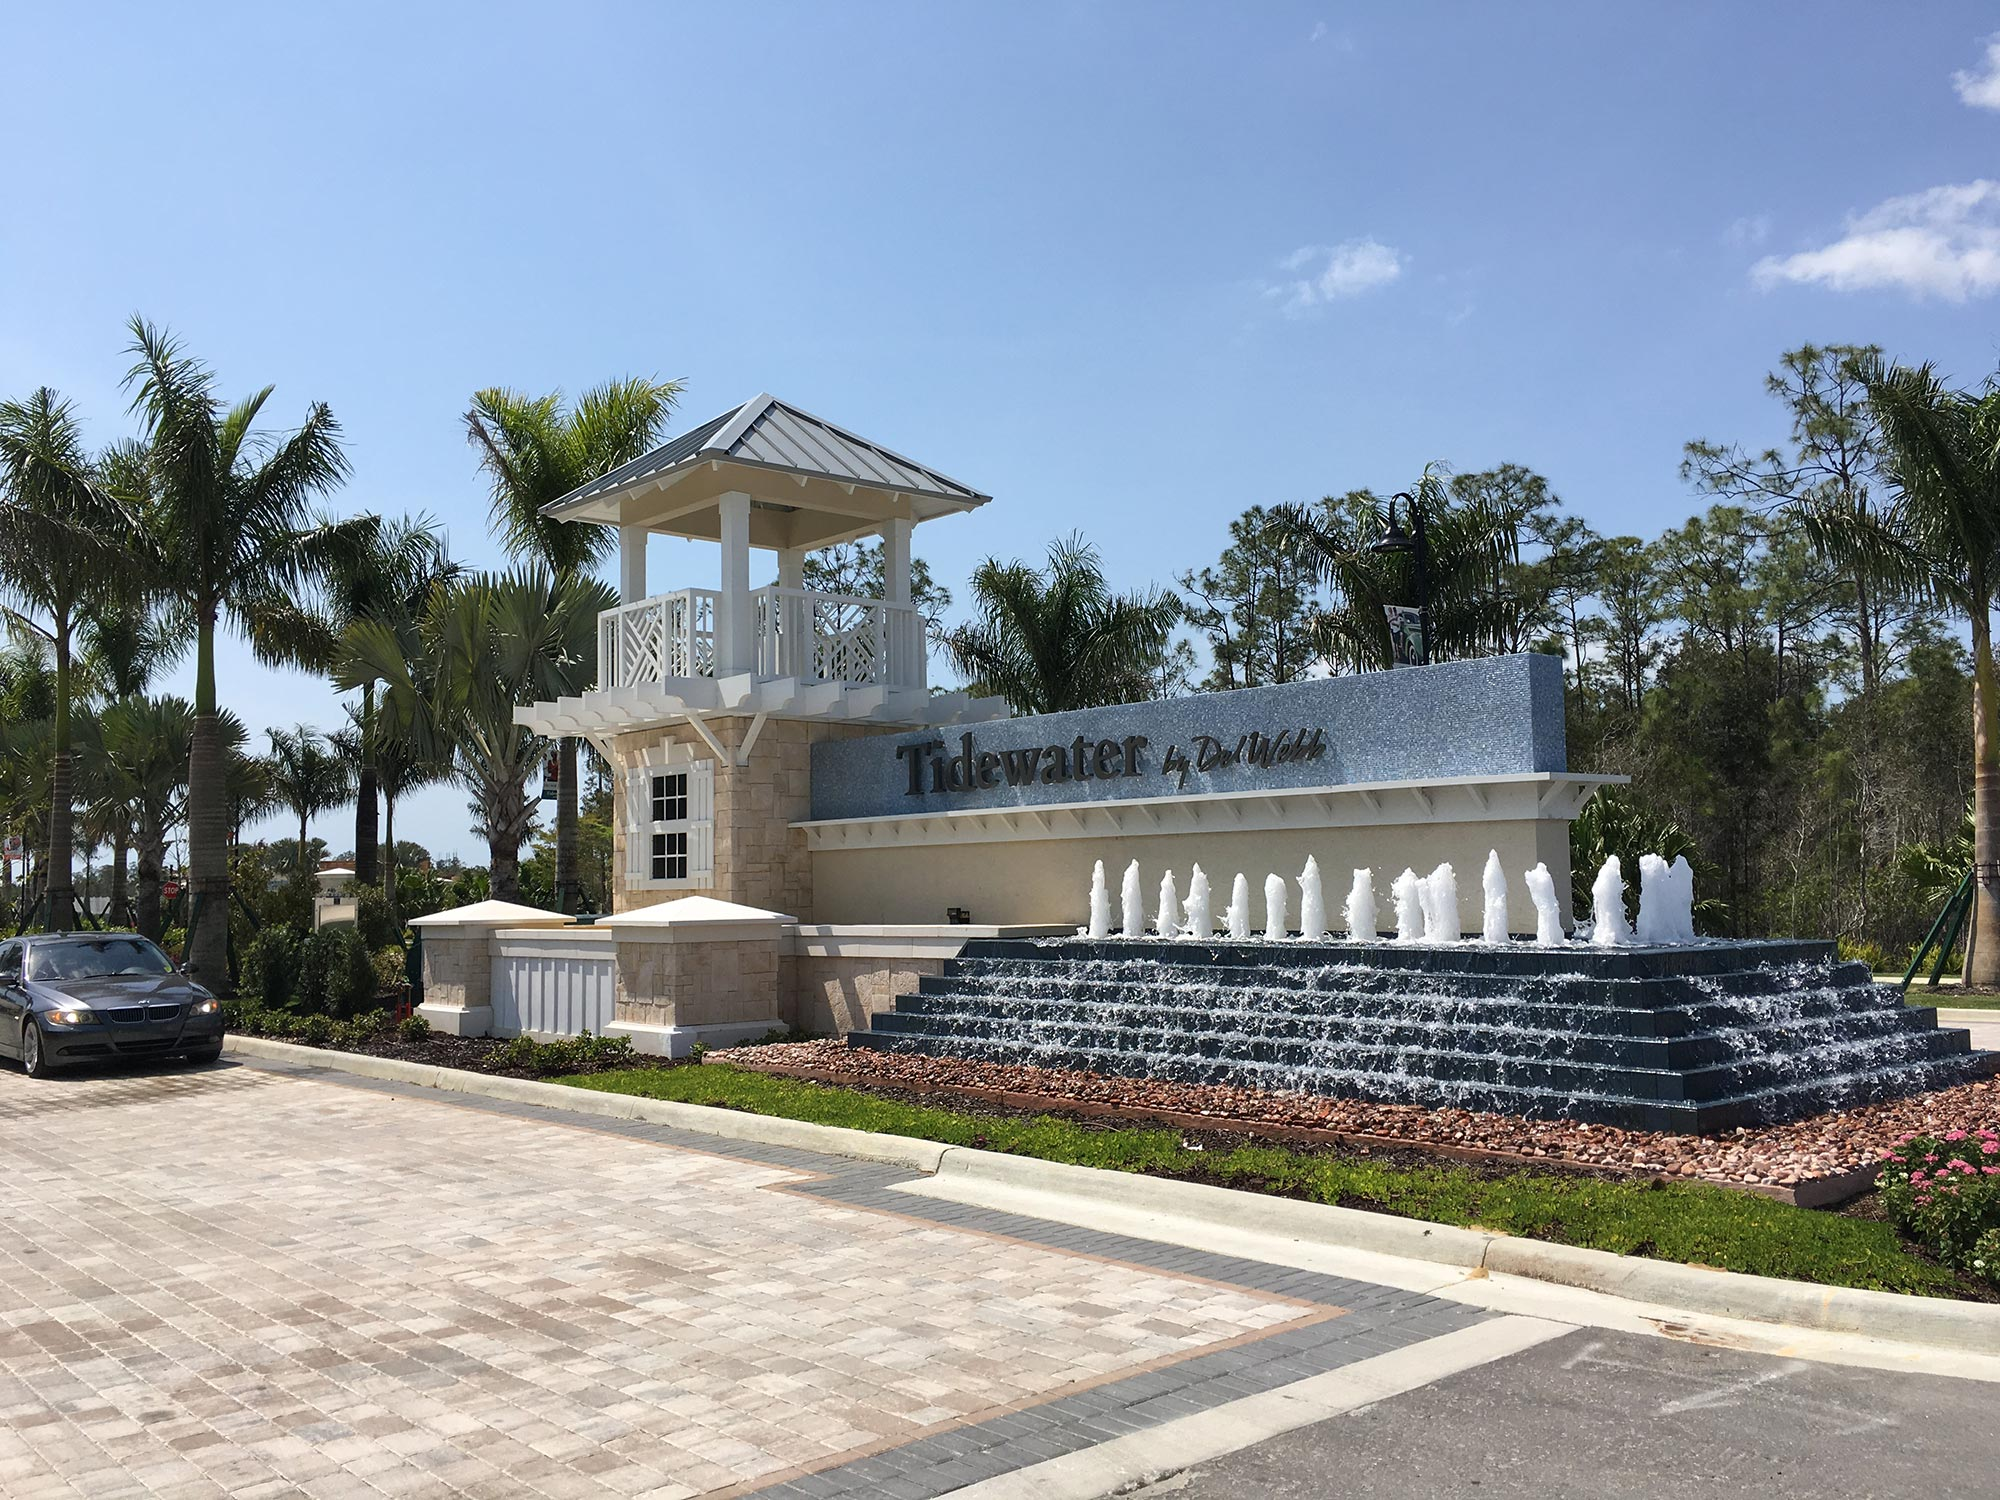 Sign with waterfall feature and similar architecture to clubhouse.